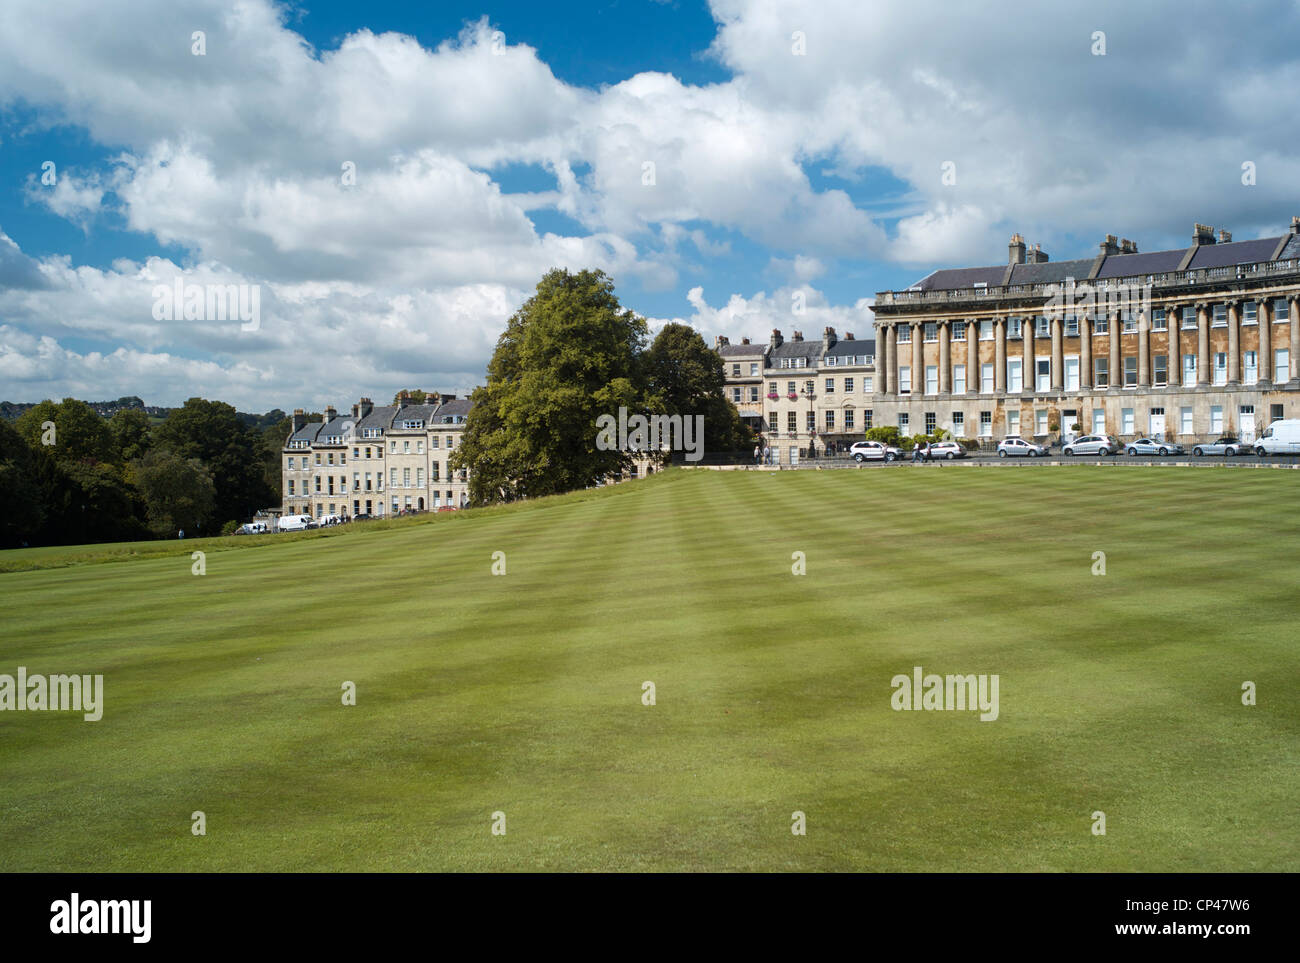 Le Royal Crescent, Bath UK Photo Stock